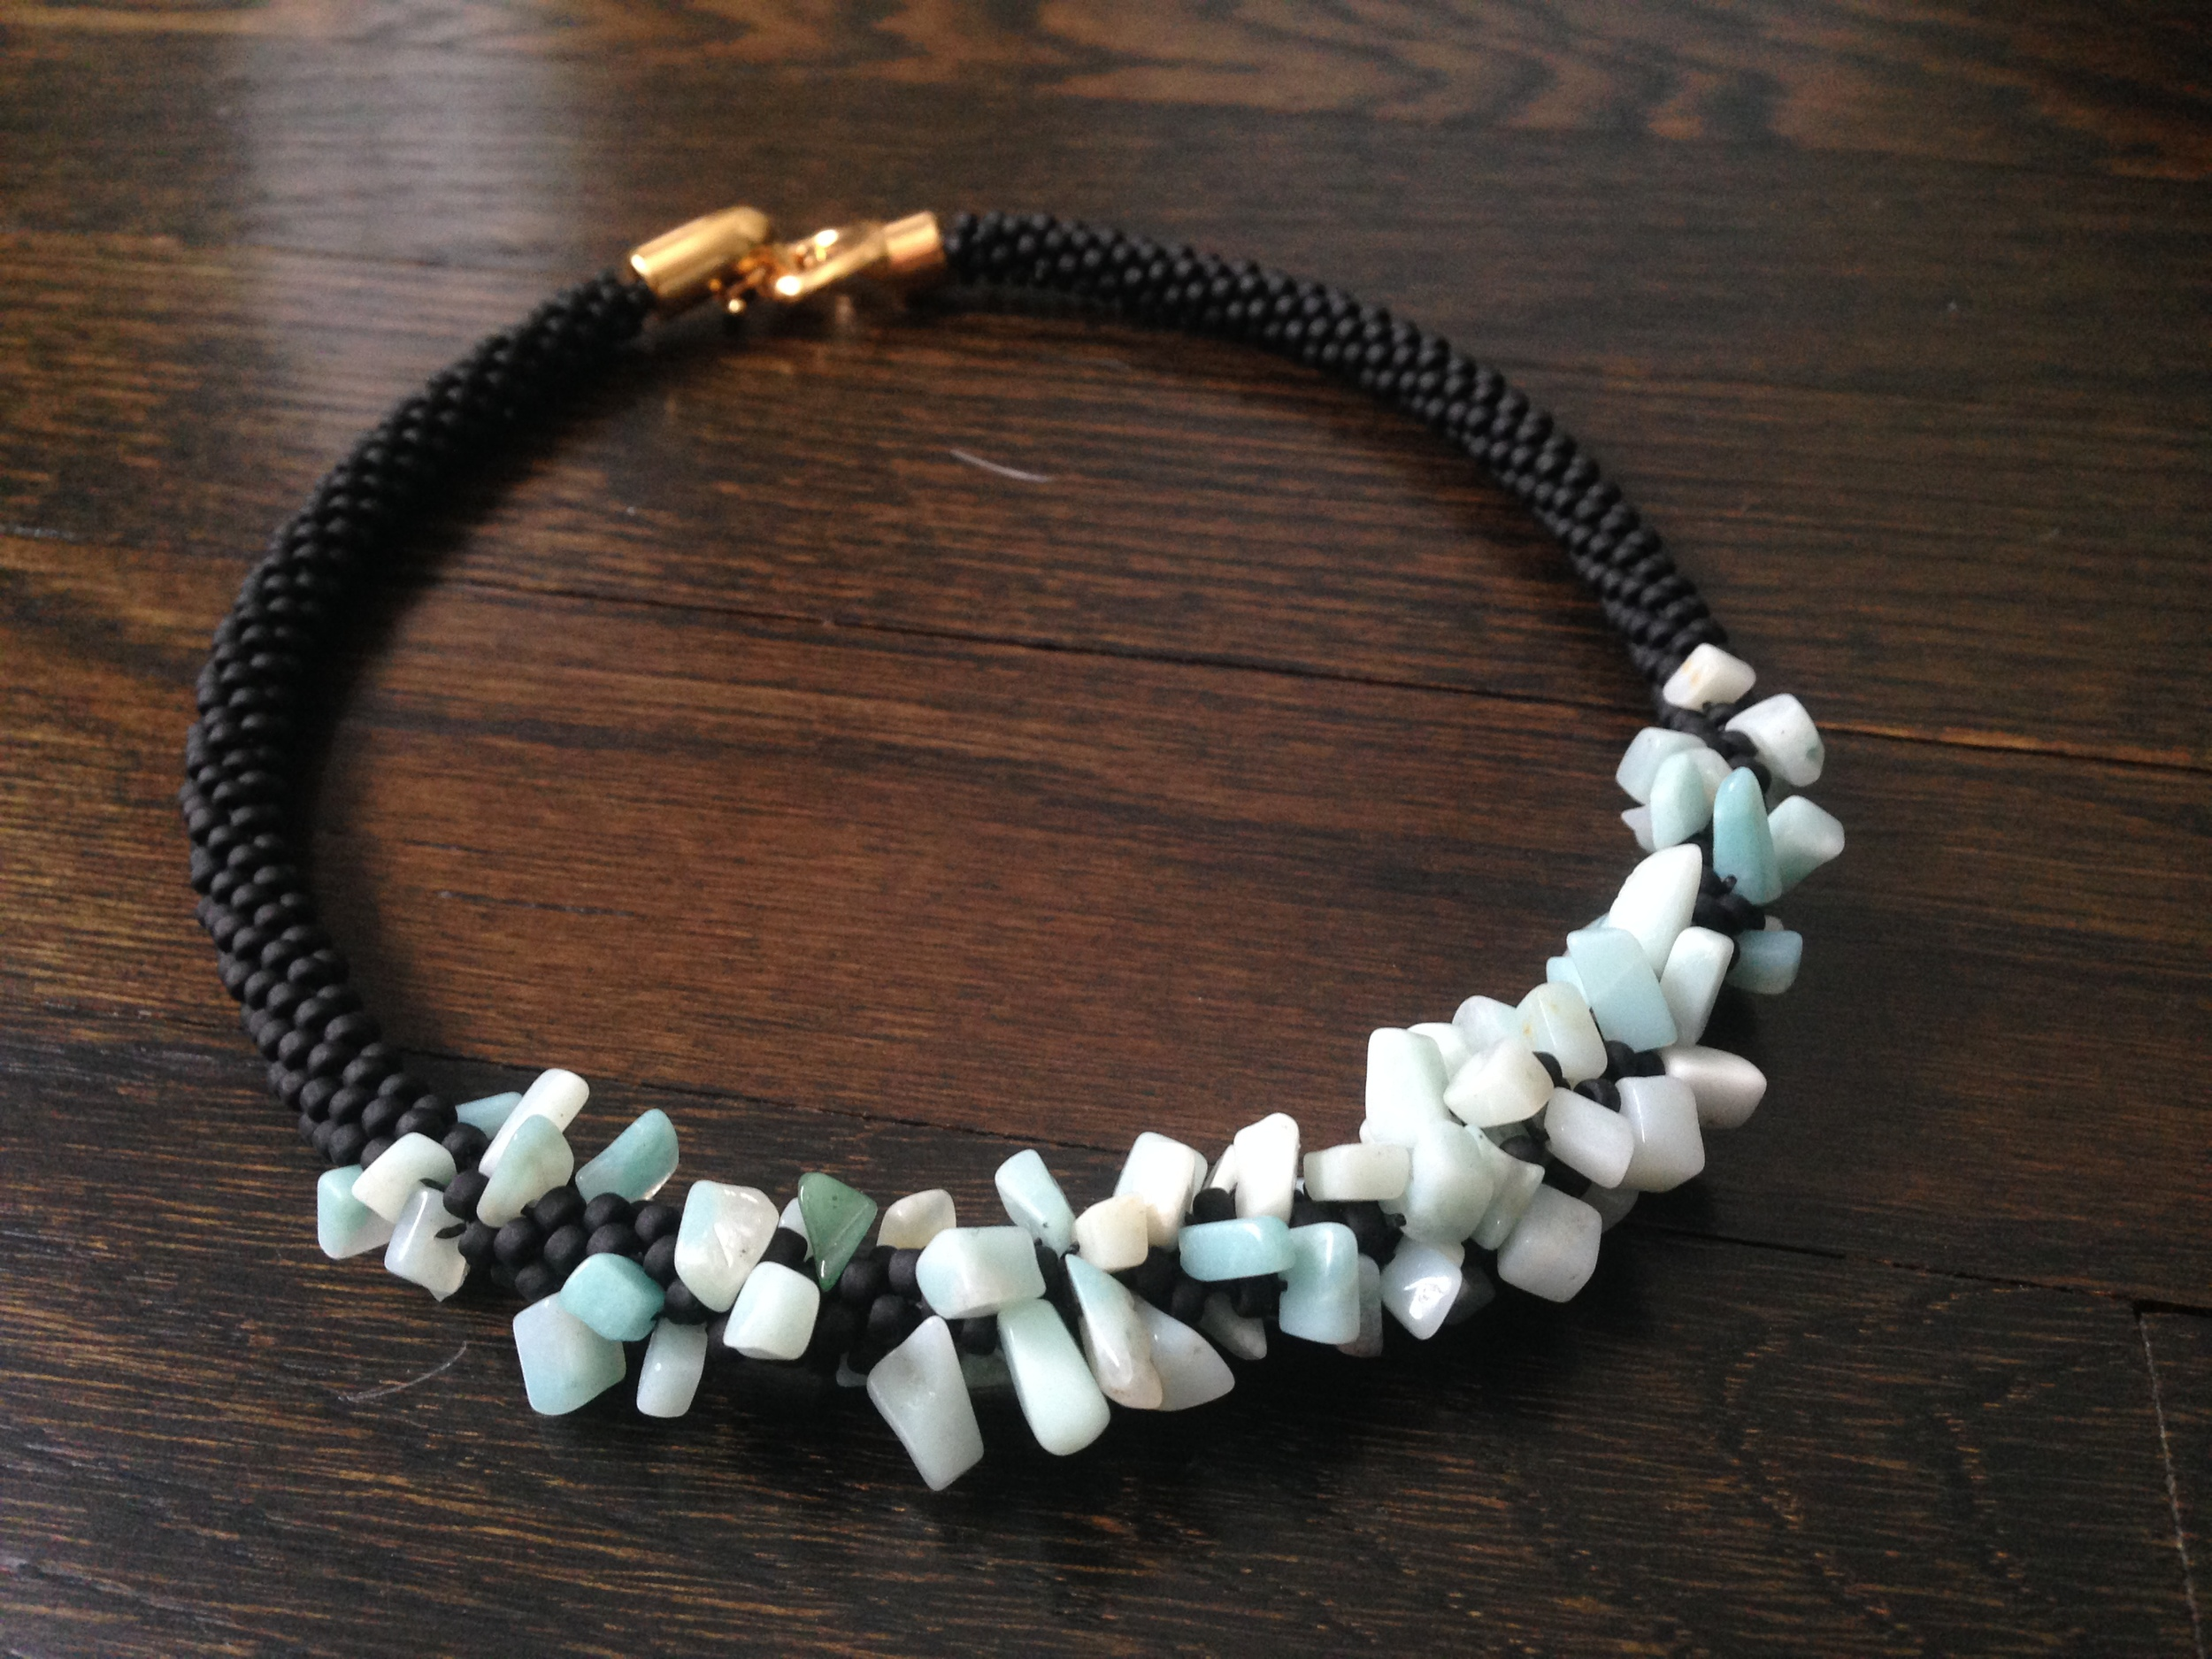 Kumihimo, turquoise and matte black seeds. Two versions live with Janet Watts in Dallas and Lillian Watts in Stamford.